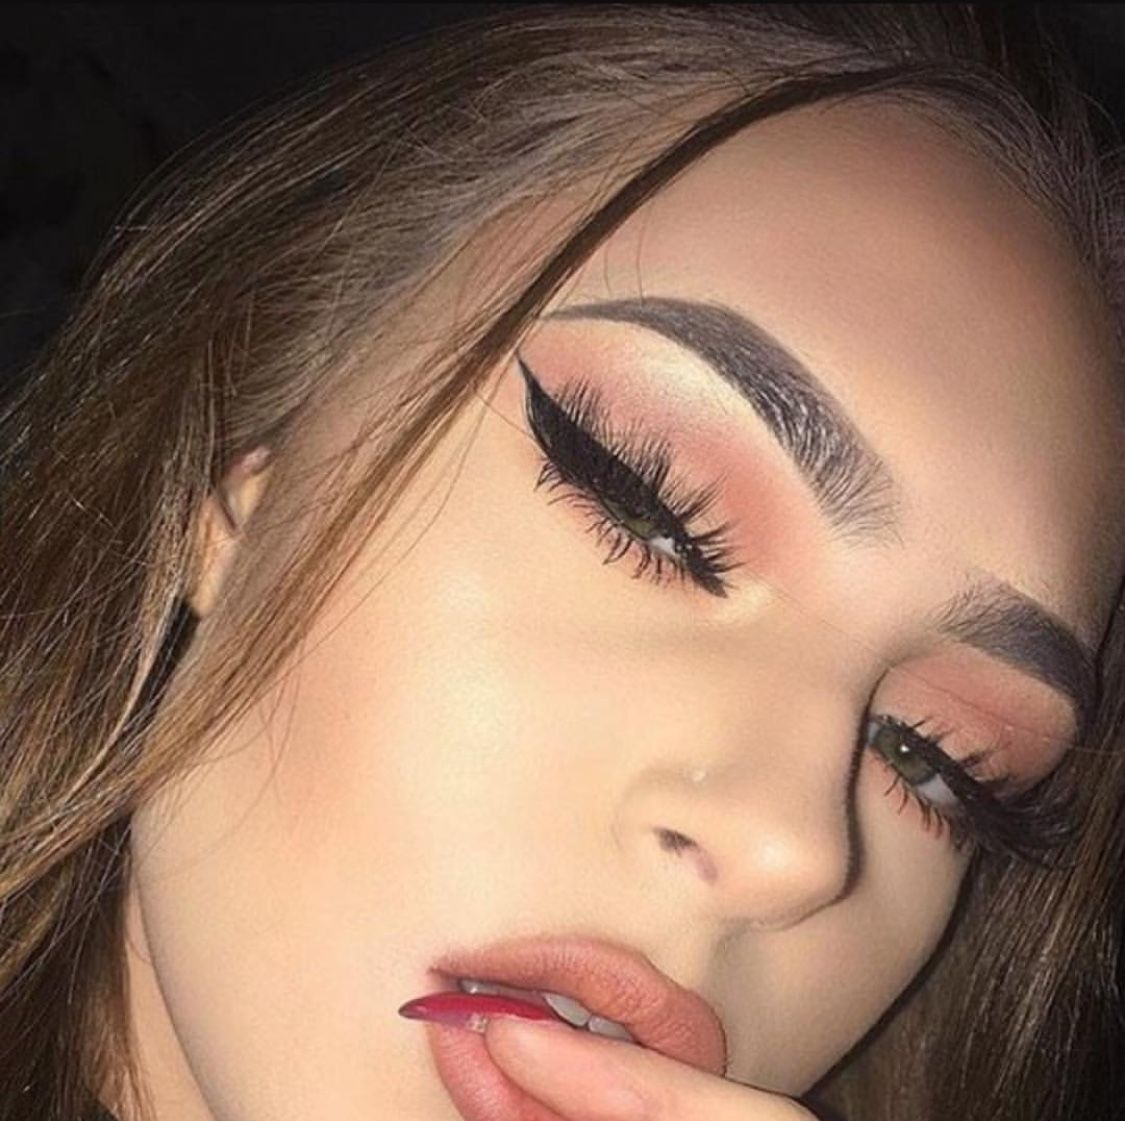 Pin by Alessia on profile pics  Pinterest  Makeup Cake face and